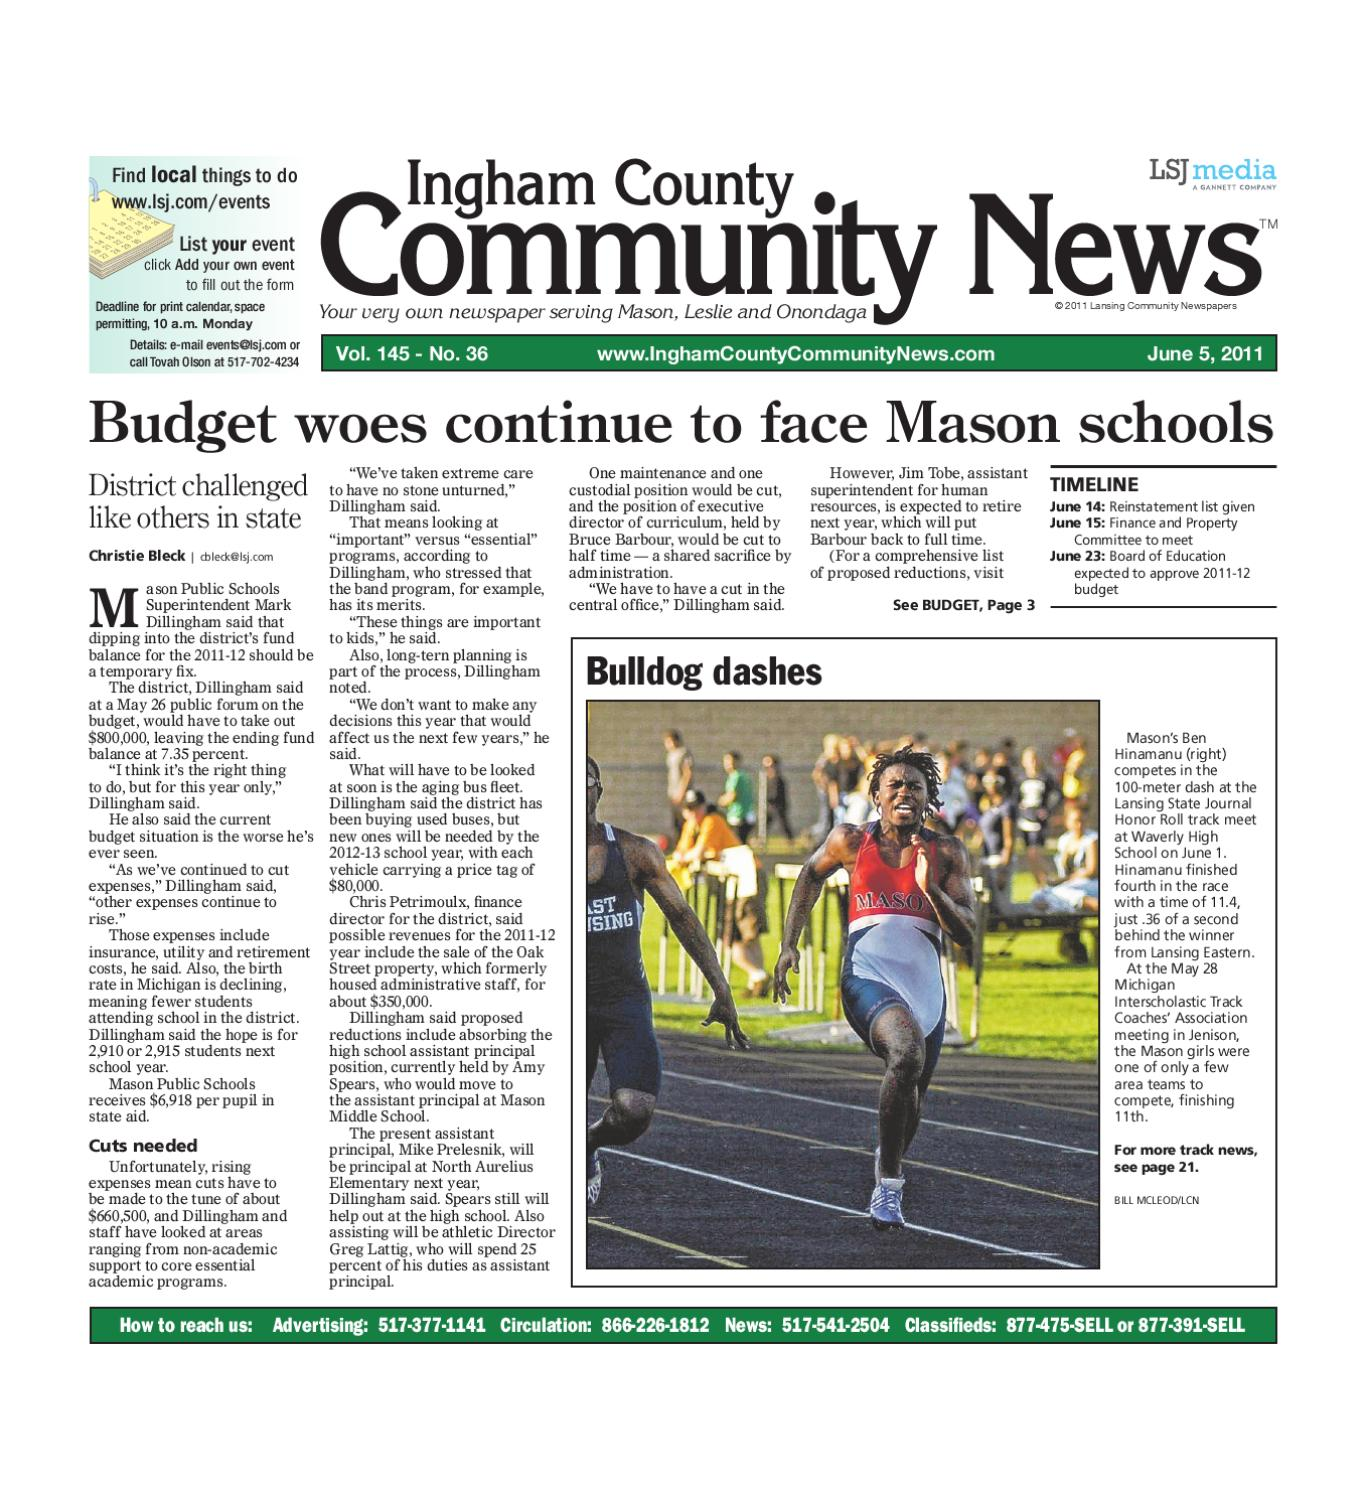 Ingham County munity News by Lansing State Journal issuu